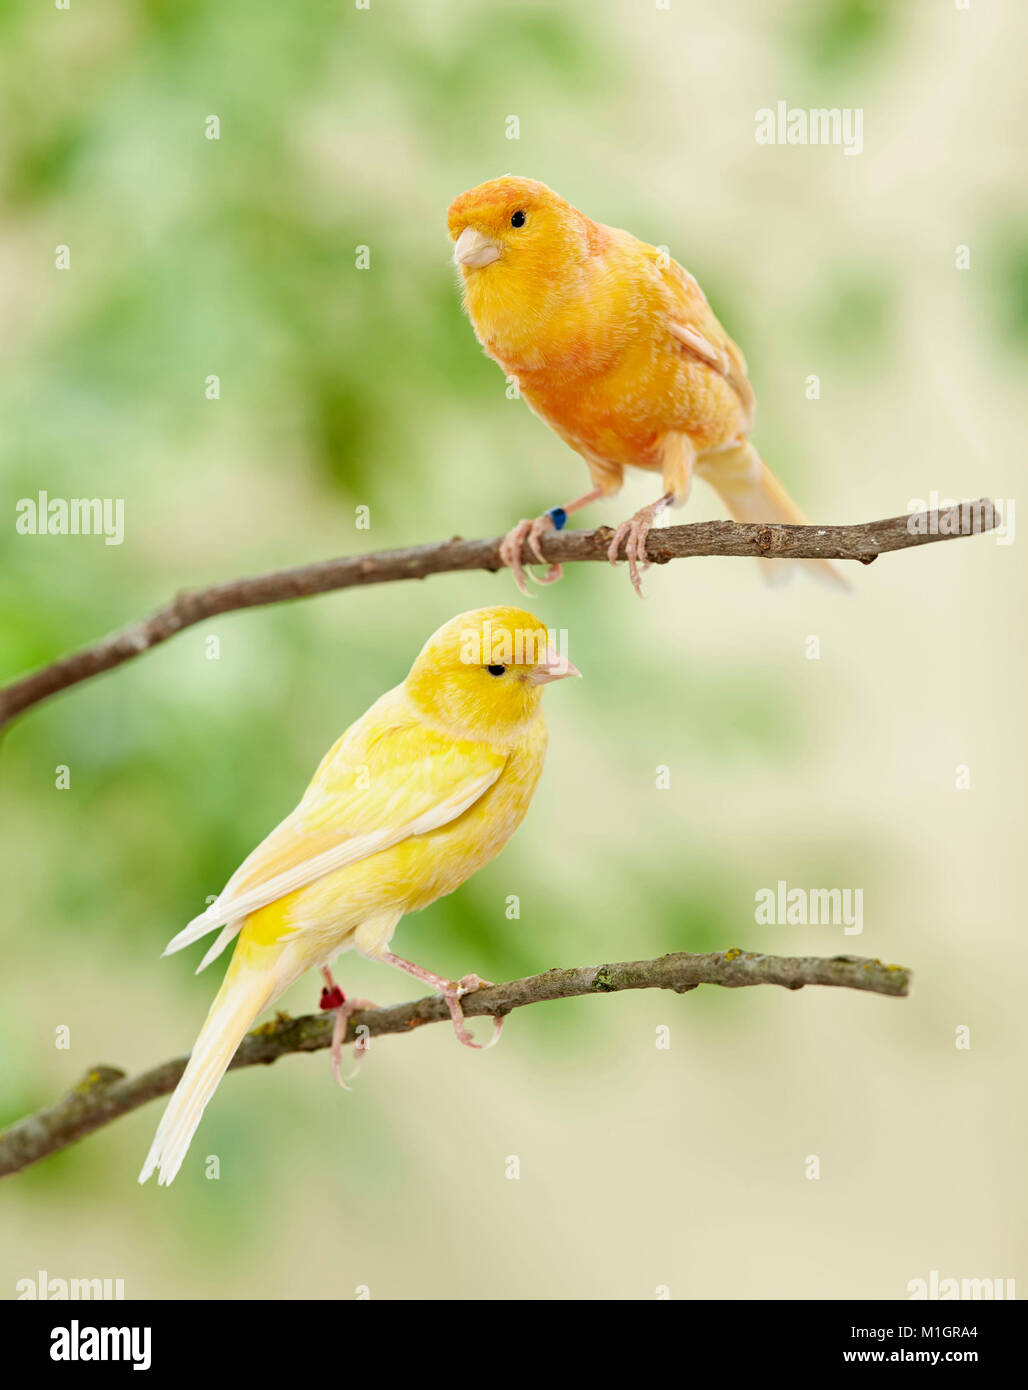 Domestic canary. Two birds of different colour perched on twigs. Germany. - Stock Image